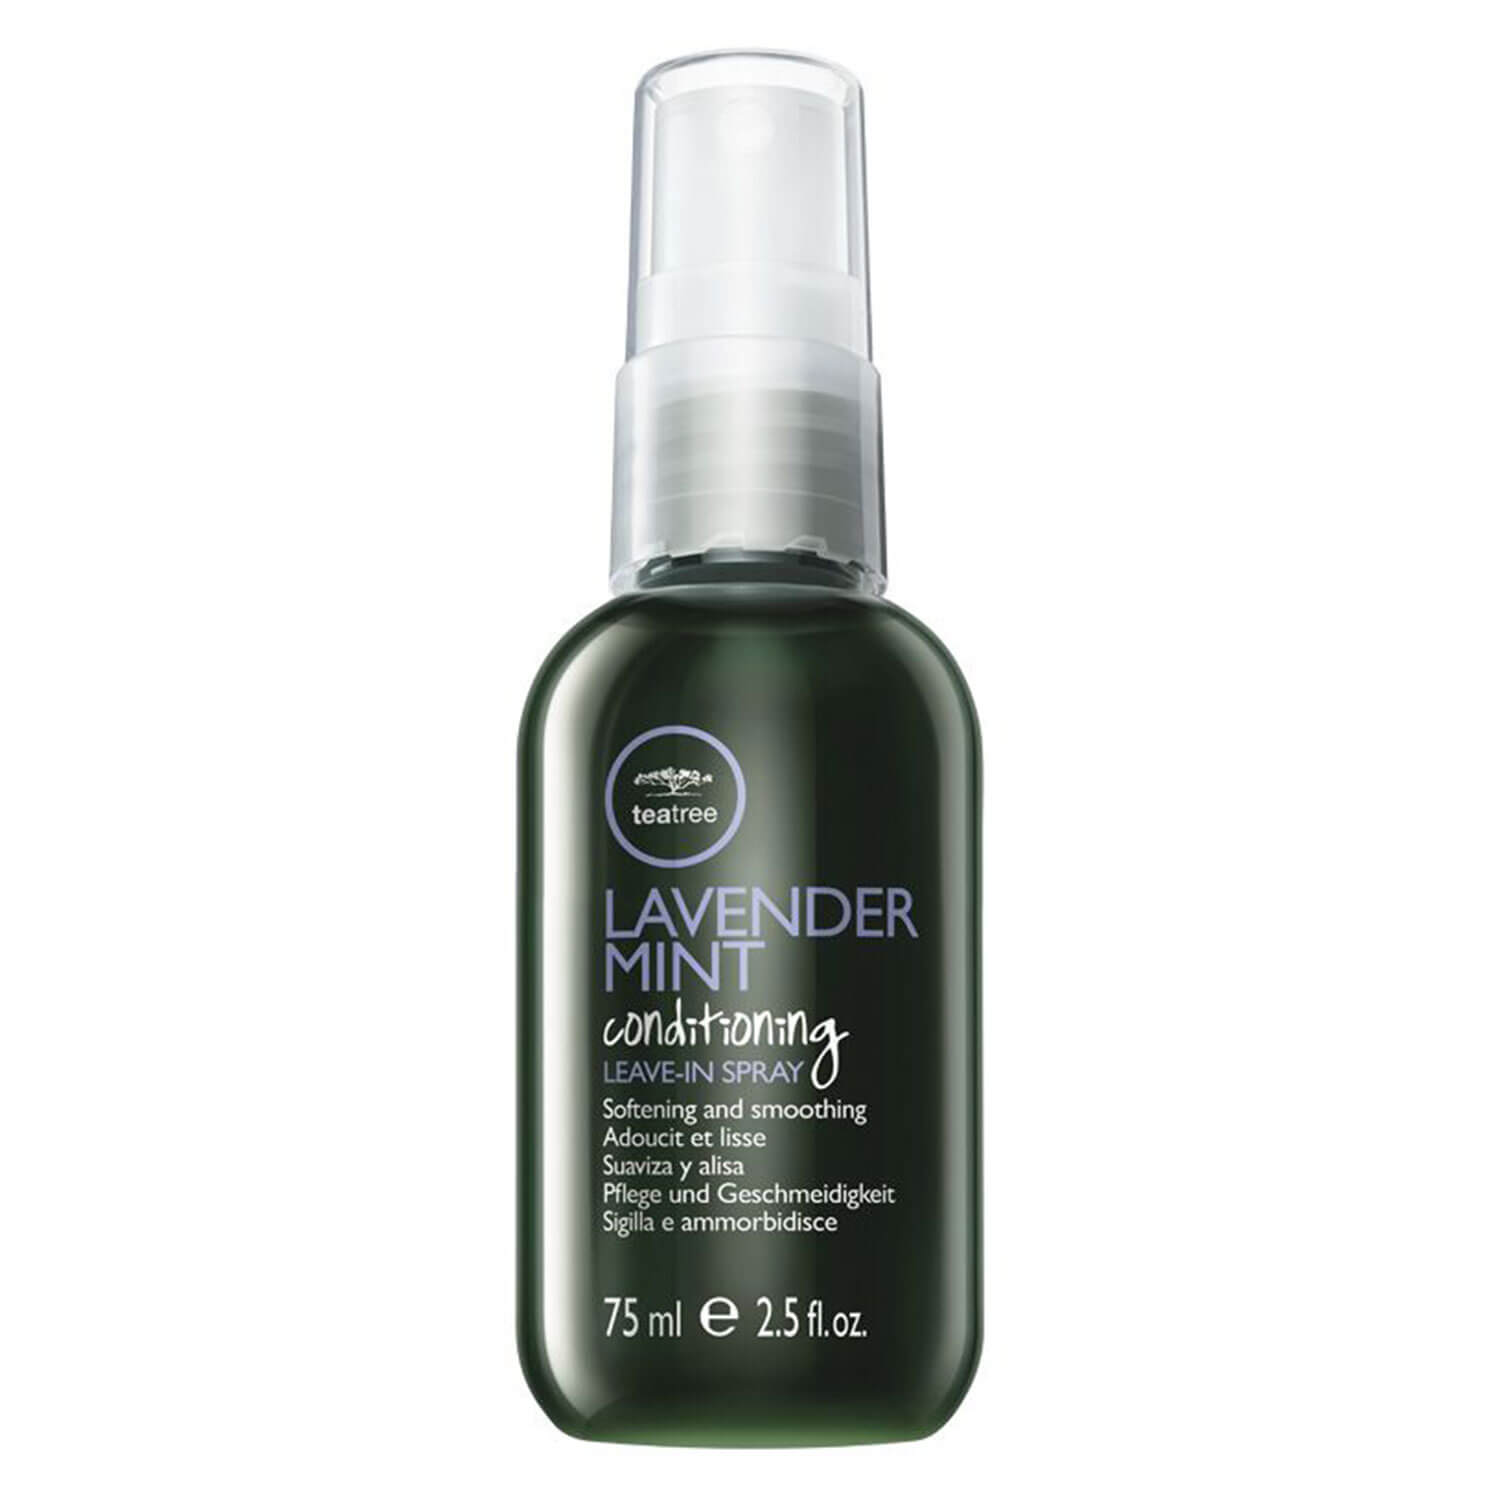 Tea Tree Lavender Mint - Conditioning Leave-In Spray